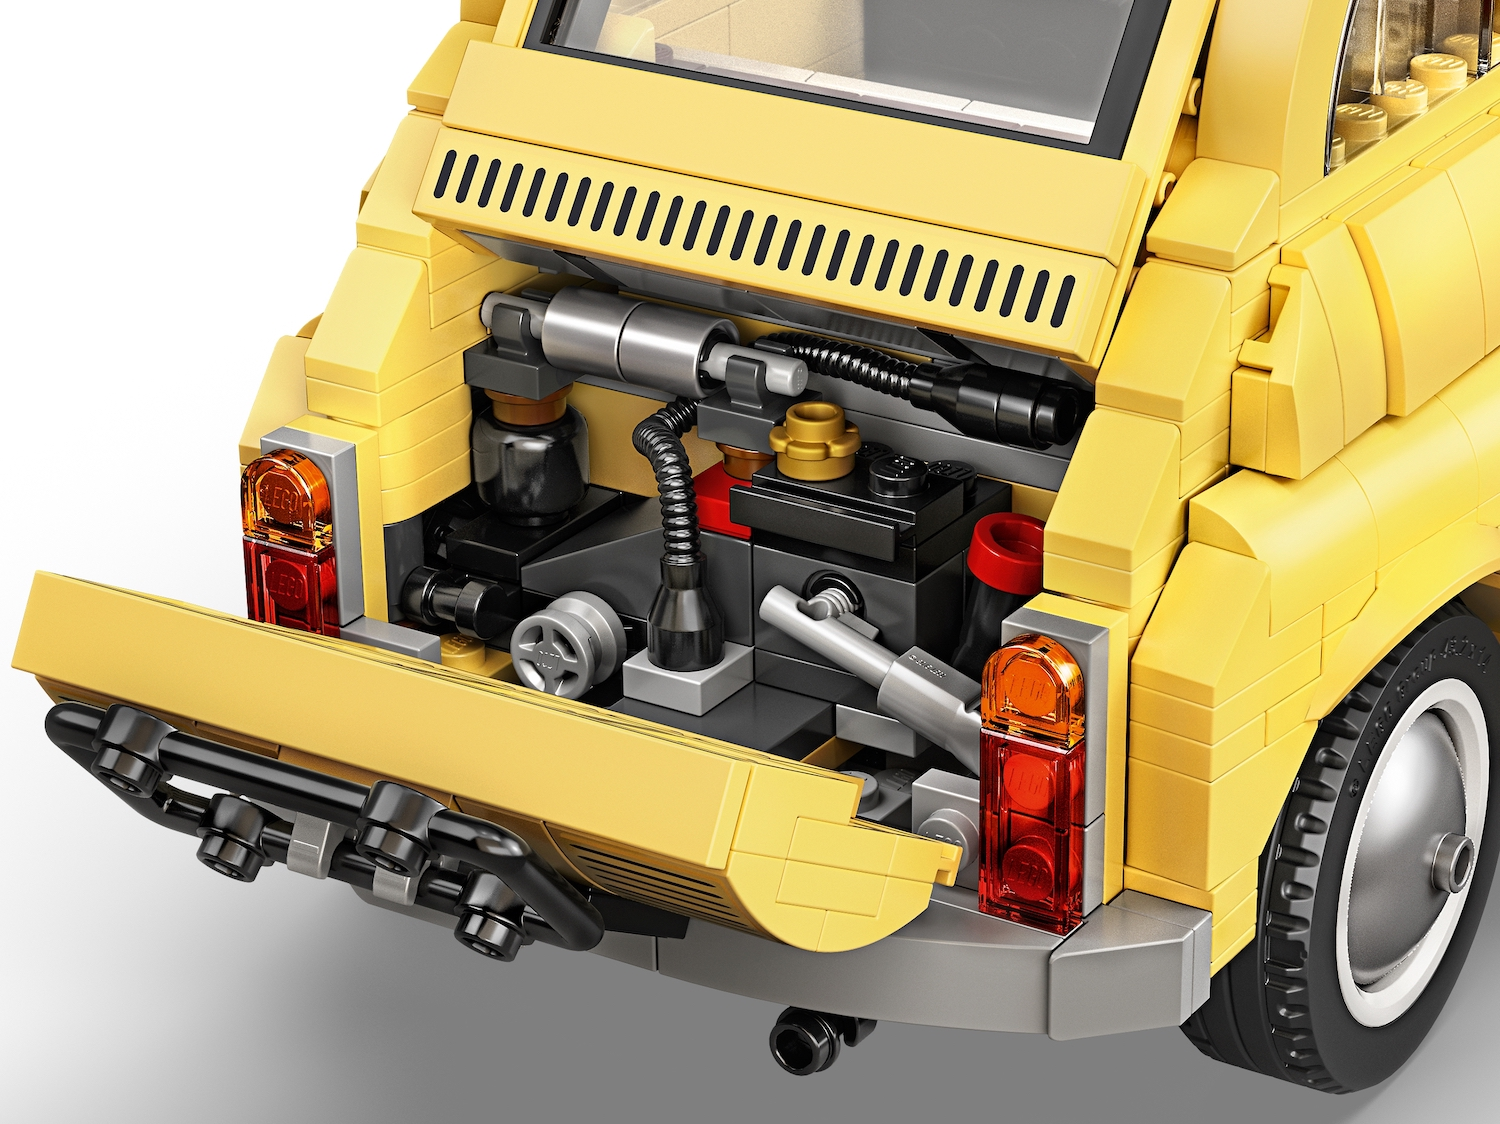 lego fiat 500 toy car rear engine hatch